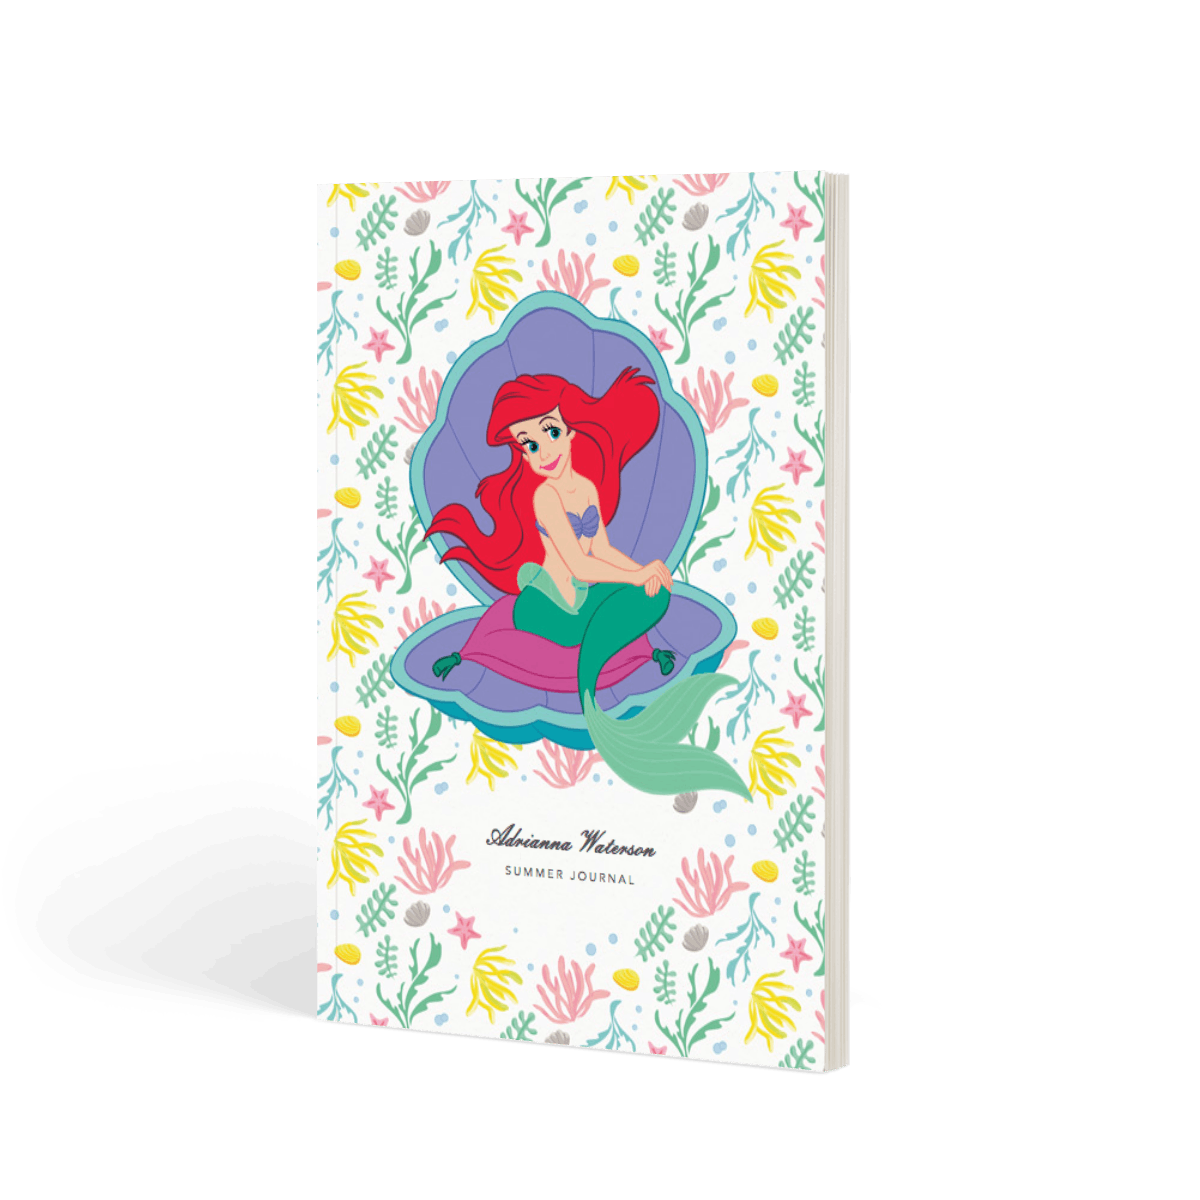 Https%3a%2f%2fwww.papier.com%2fproduct image%2f36127%2f6%2fthe little mermaid 9073 front 1523880129.png?ixlib=rb 1.1